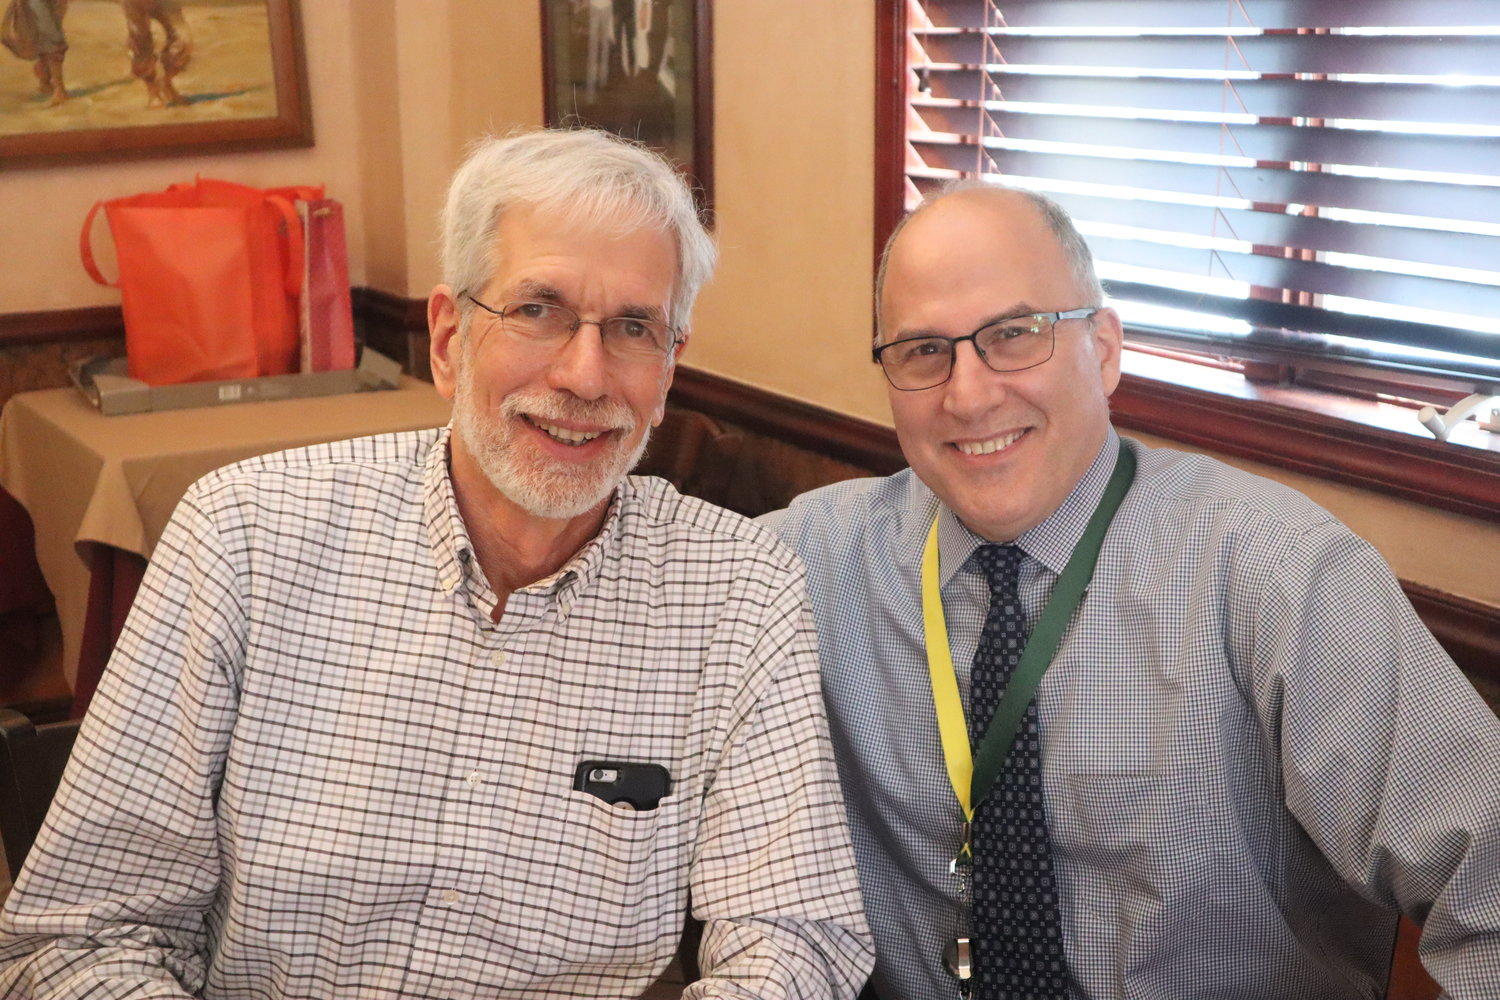 Mike Dolber, left, and Mark Steinberg attended the Bellmore-Merrick Retired Teachers Association's 35-year anniversary dinner on May 22.